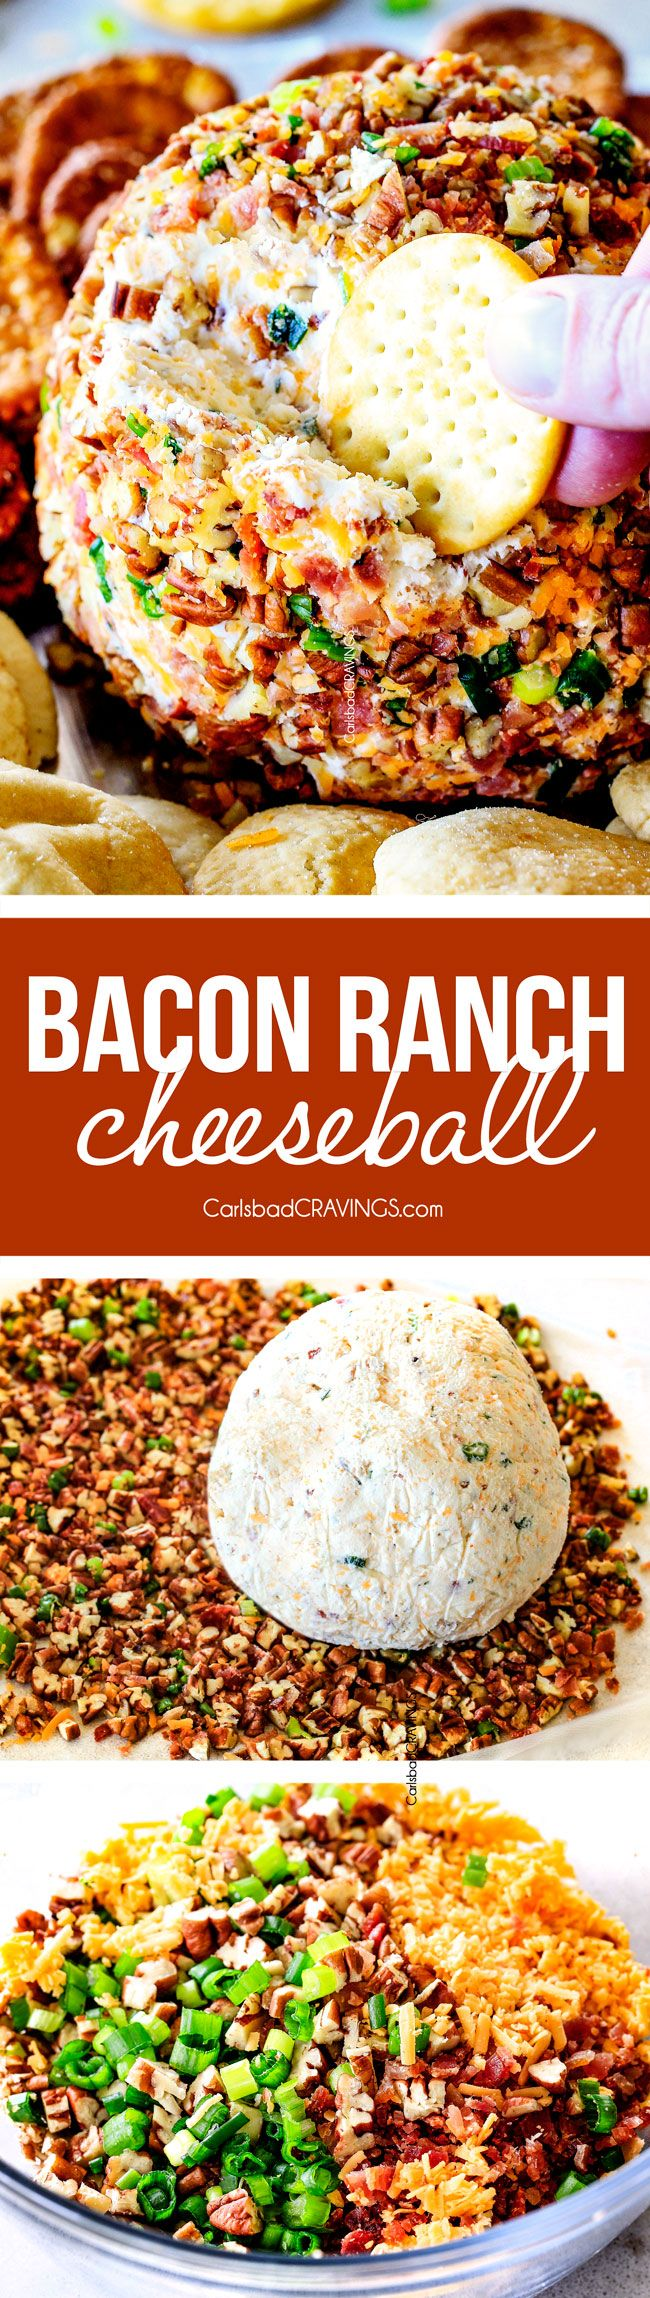 This Bacon Ranch Cheese Ball is a hit every time I make it and is always the first appetizer gone! Its super easy and make ahead for stress free entertaining!